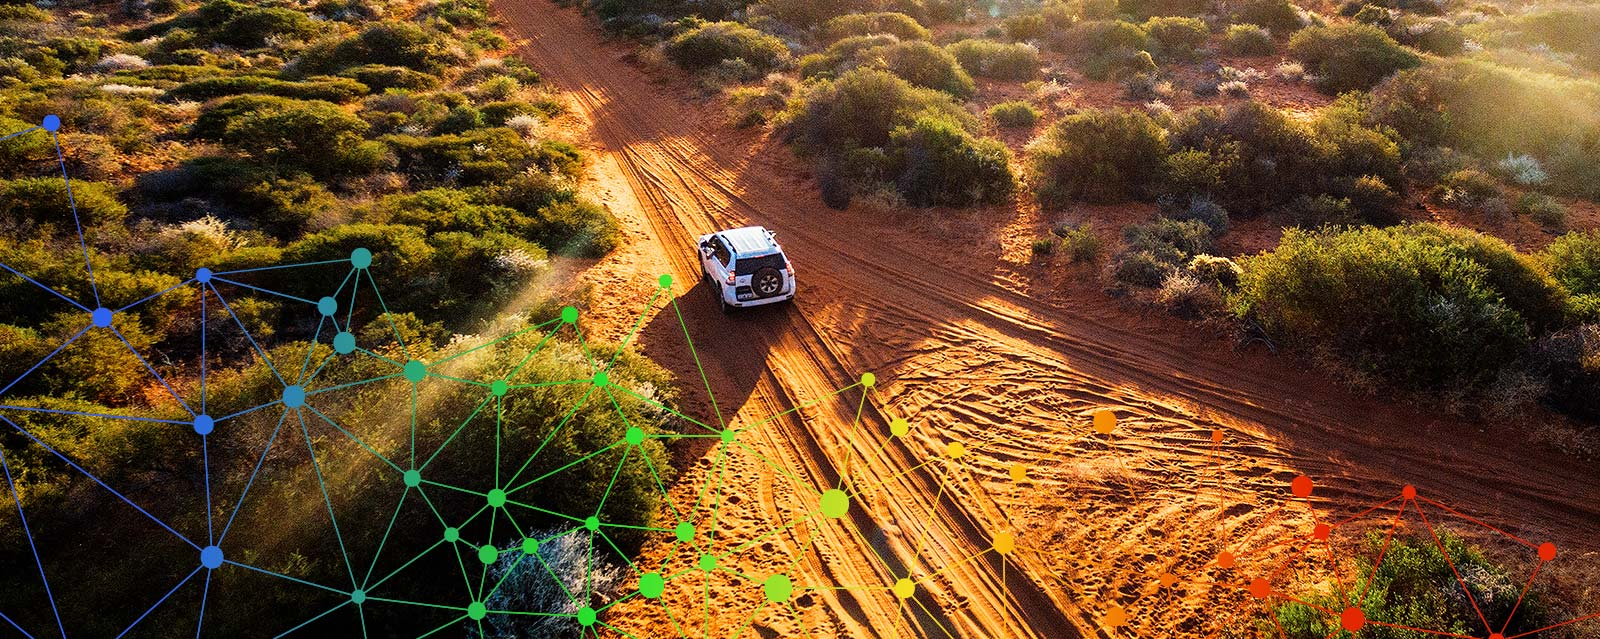 Vehicle Mounted LiDAR Scanning Services Perth Western Australia